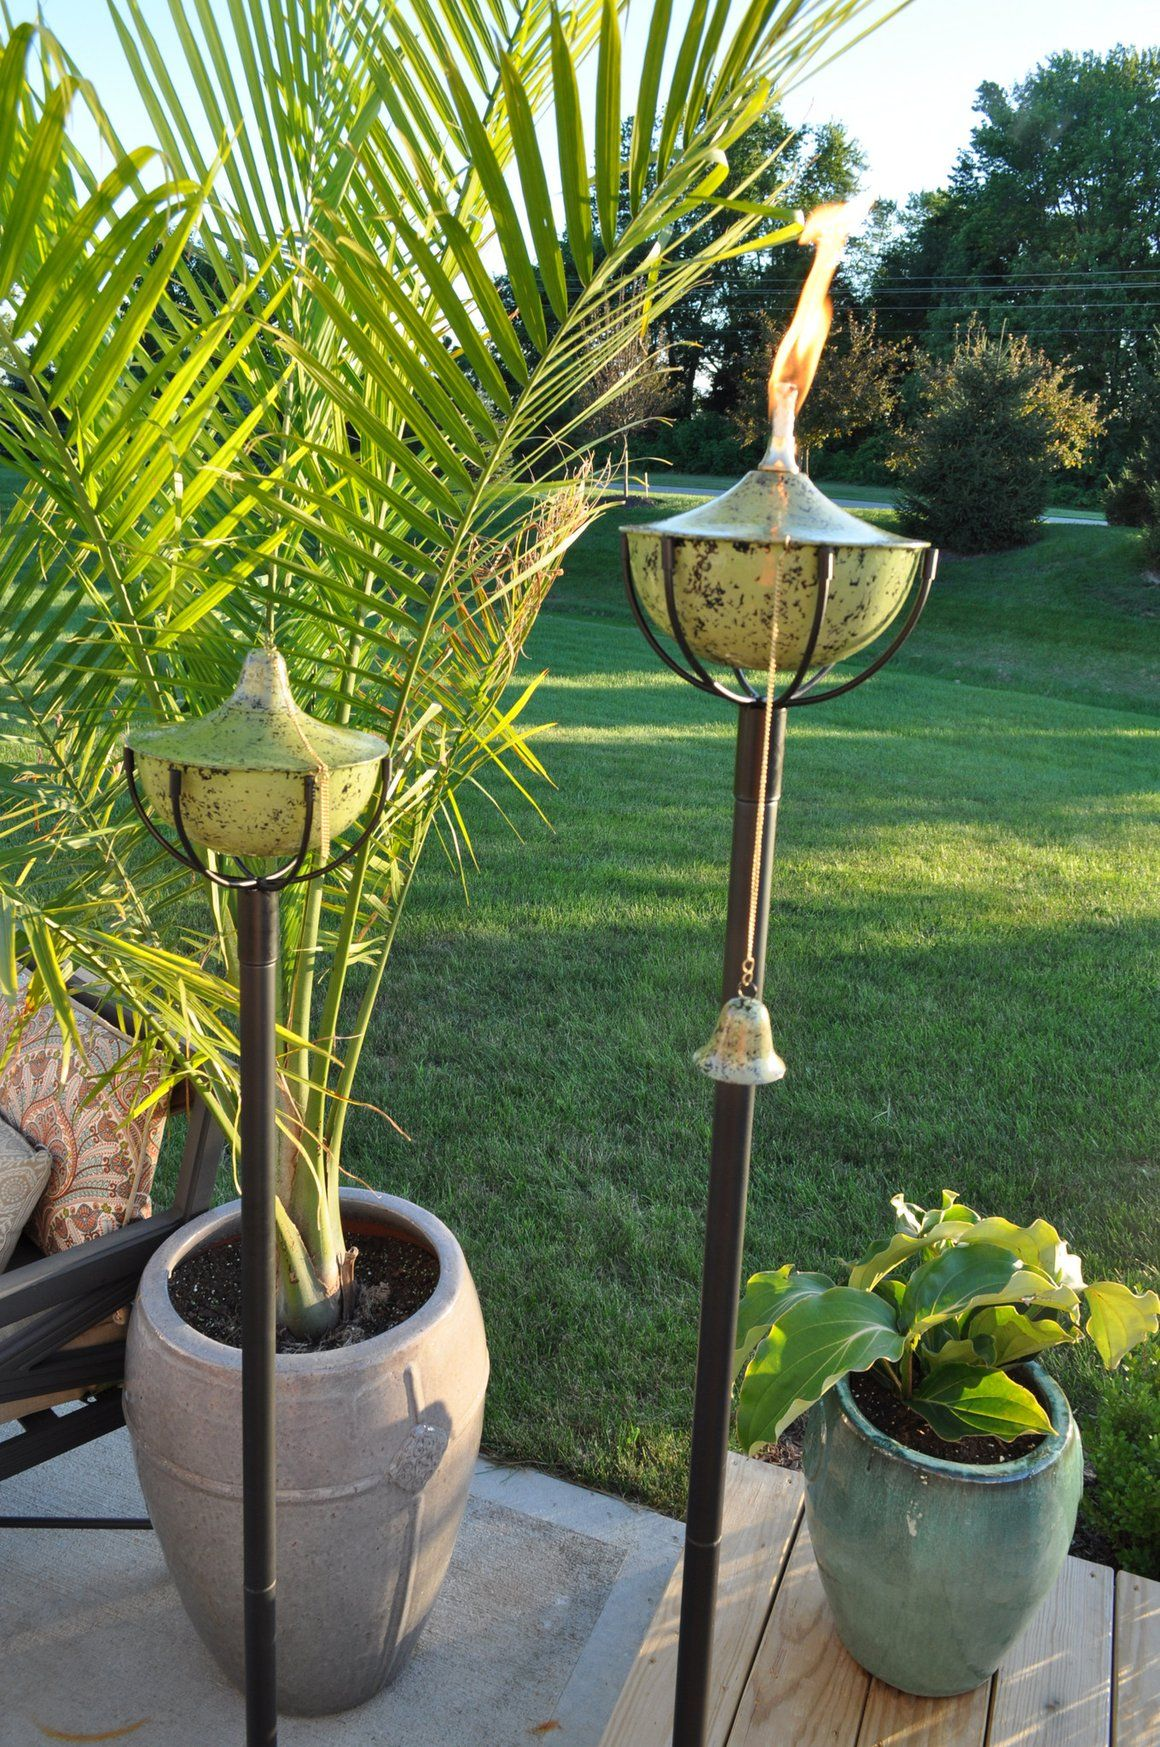 Maui Grande Tiki Torch Earthtone Set Of 2 Torches Earth Is Hatonendmade And Comes With A Fibergl Wick That Does Not Burn Away